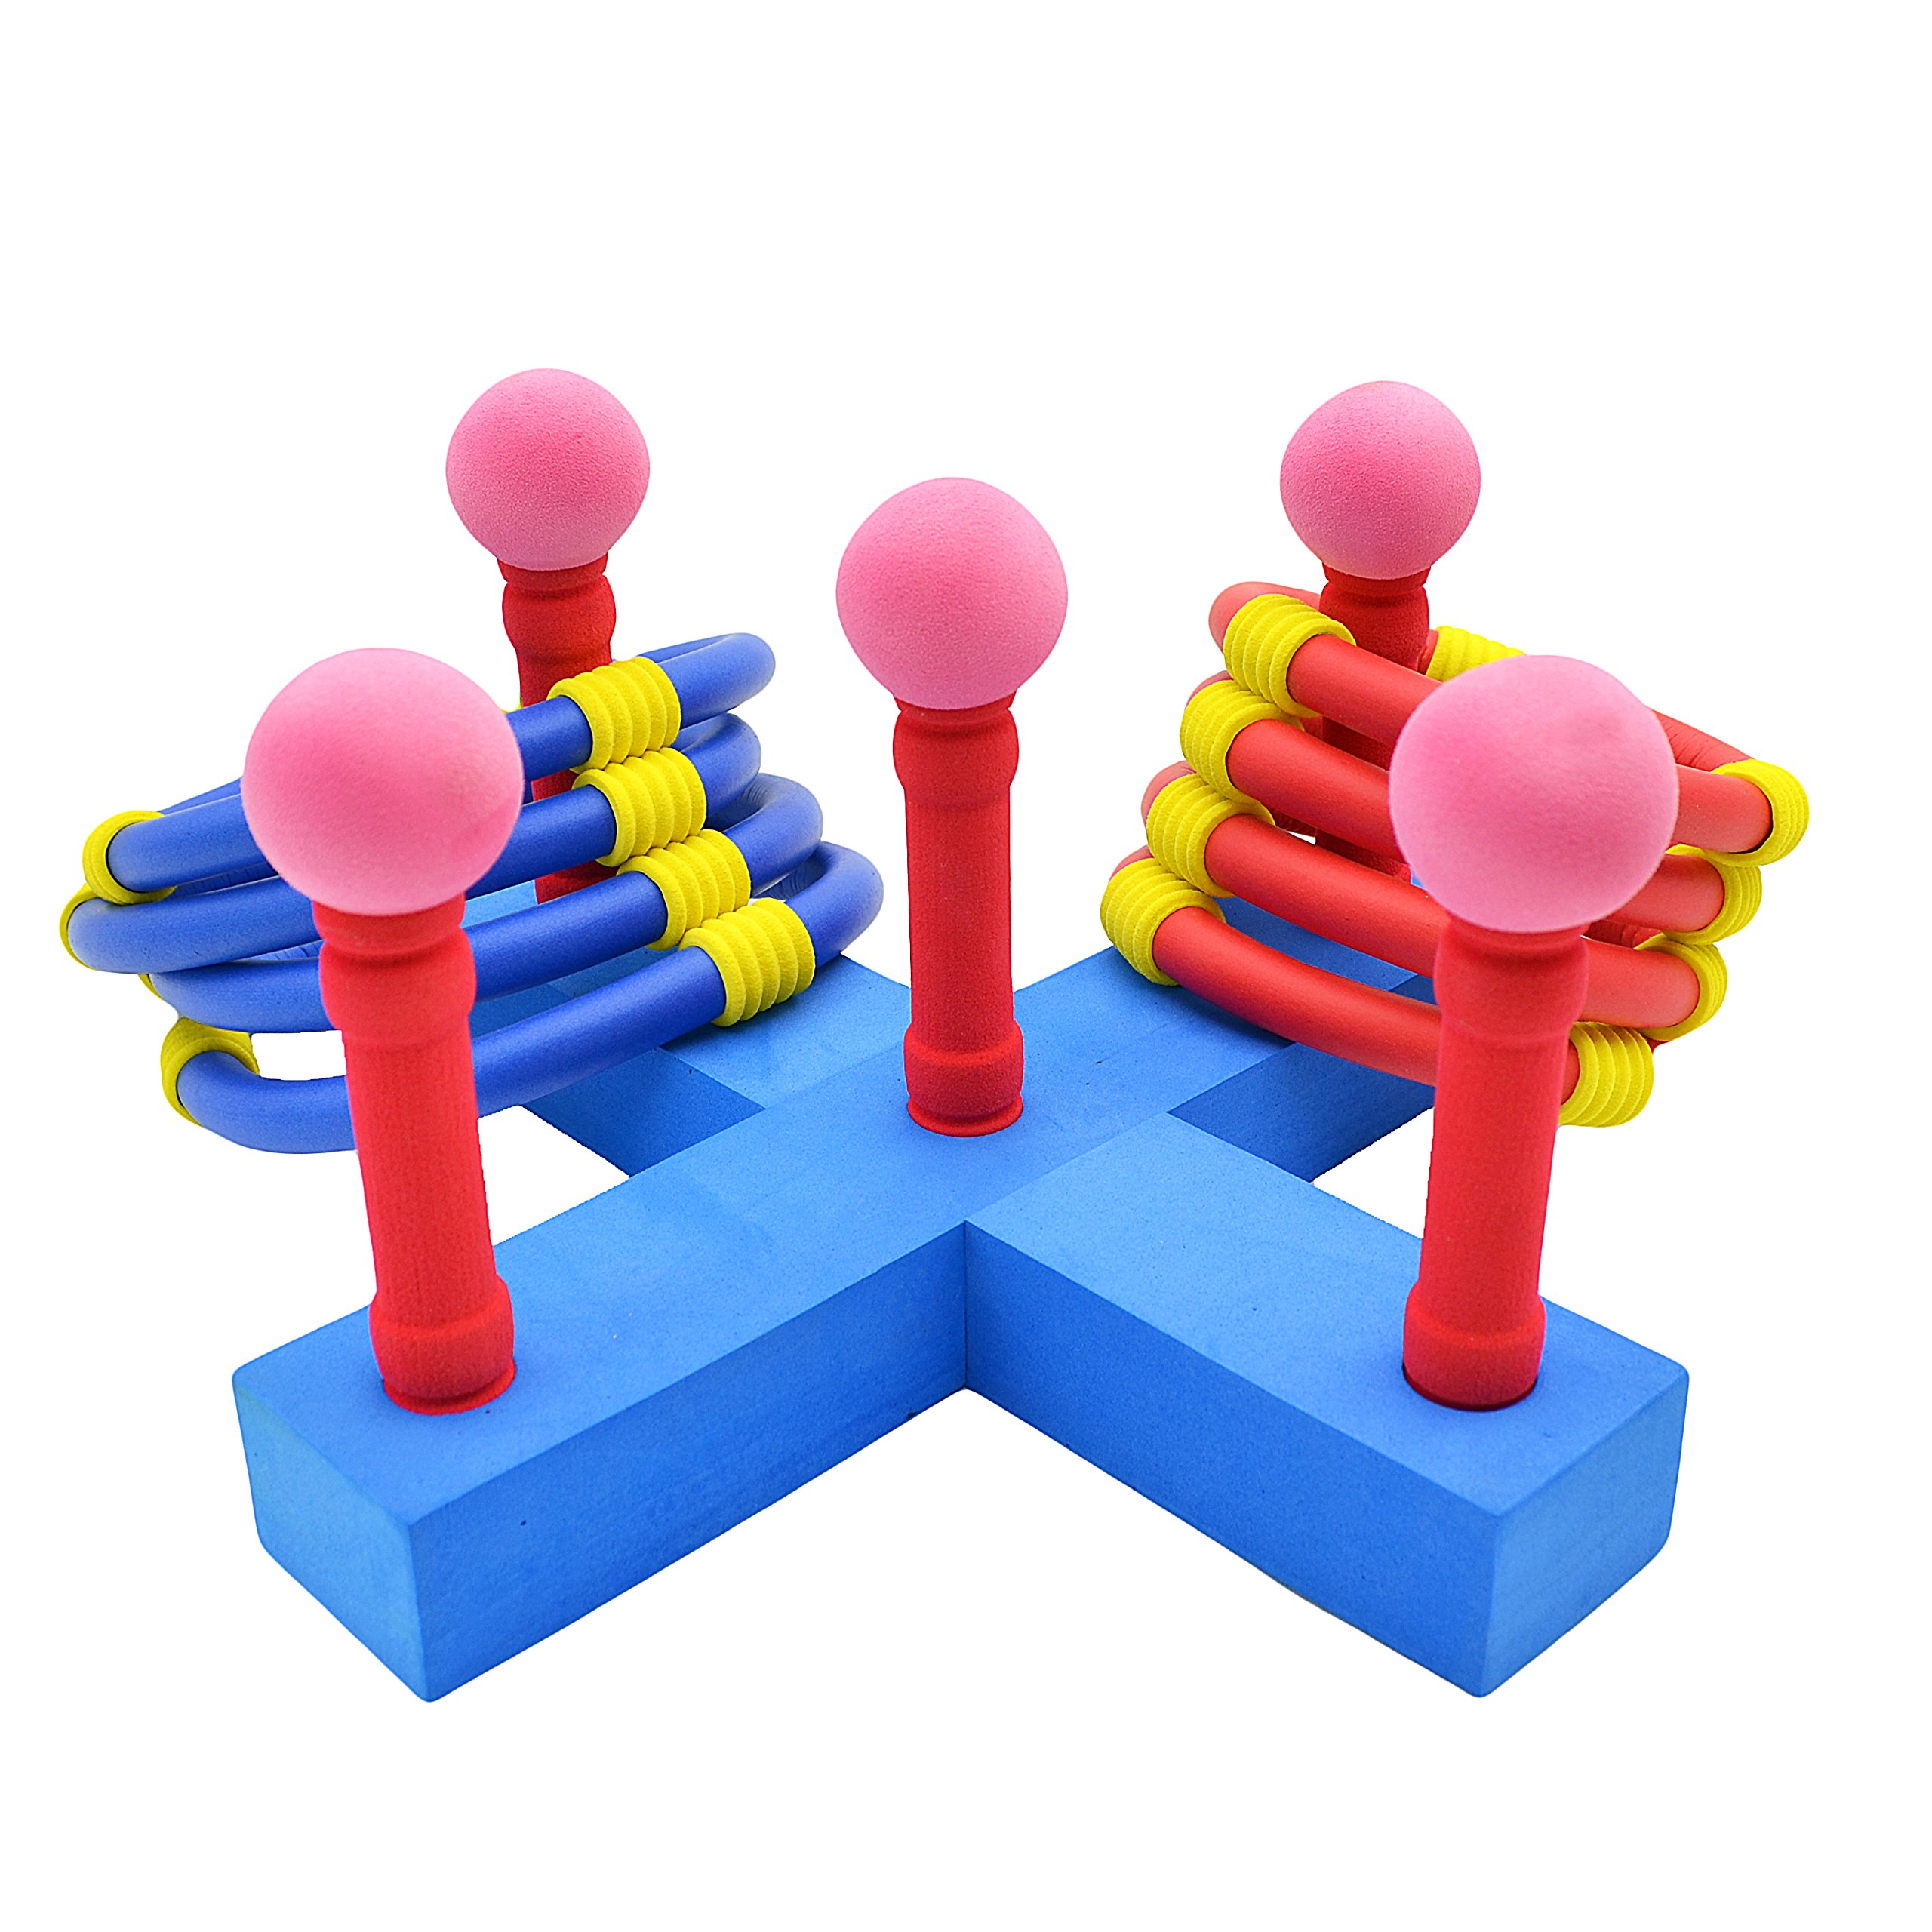 Agirlgle Ring Toss Games For Kids and Outdoor Toys Keep Kids Active-Outdoor Kids Games for Tailgating, Camping, Backyard and Garden- Easy to Assemble and Made of EVA Foam Soft Materials Safety for Kid by Agirlgle